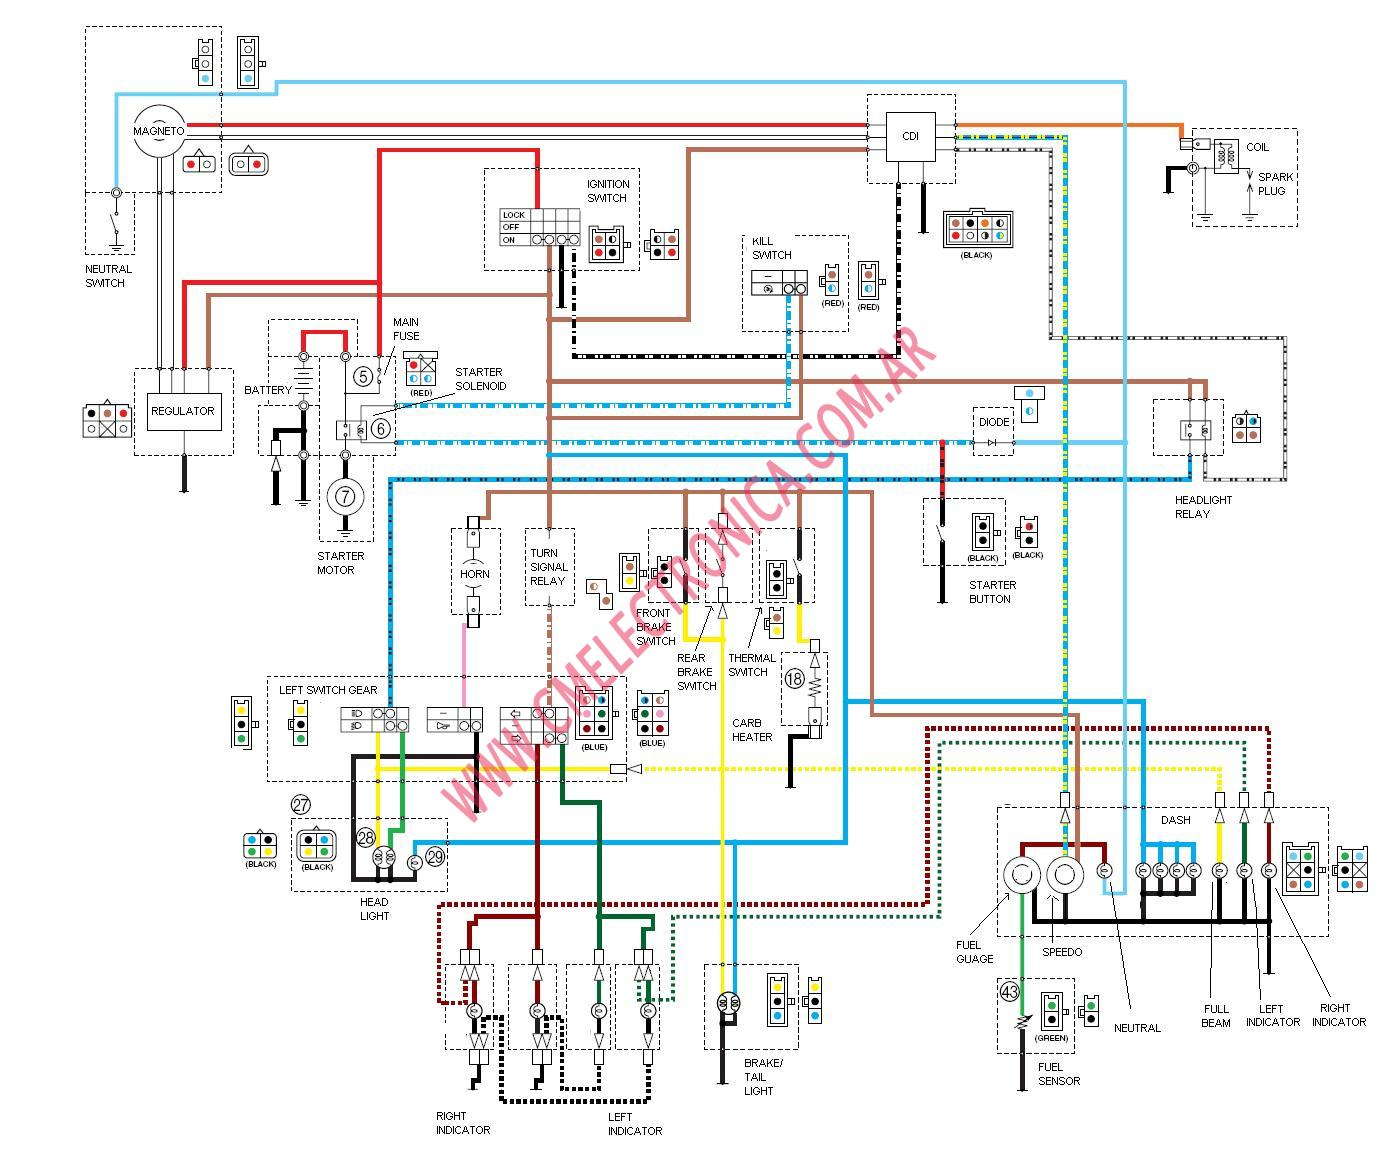 Yamaha Ybr 125 Fuse Box Location Wiring Diagram Will Be A Thing 2004 Kawasaki Bayou 300 Free Engine 2008 Review Alloy